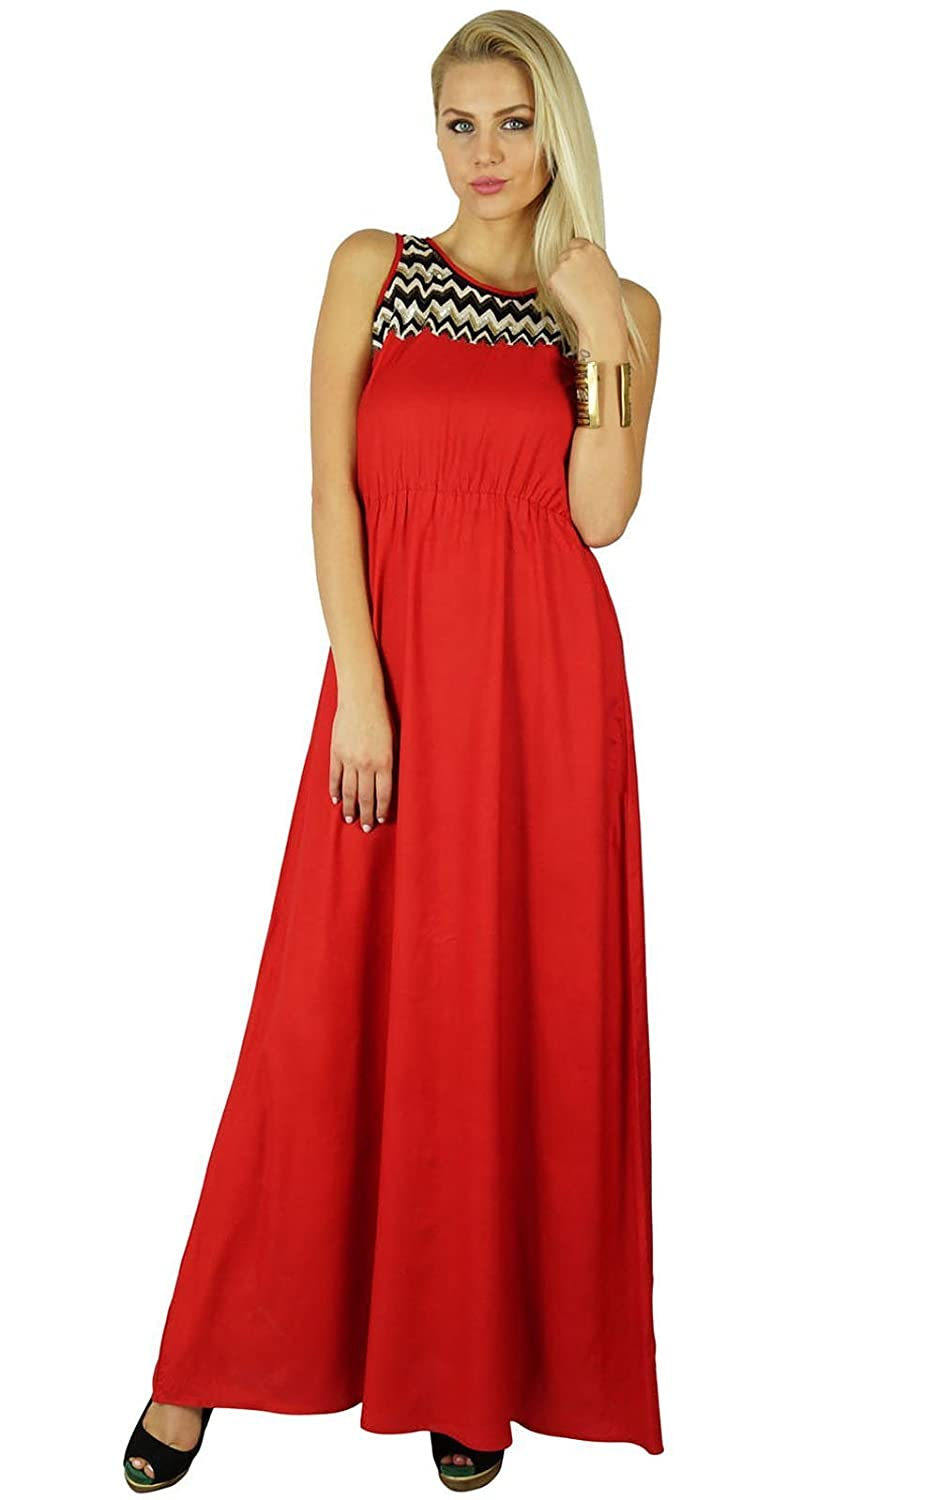 Bimba Women Long Red Maxi Dress Embroidered Neck Trendy Chic Custom Clothing